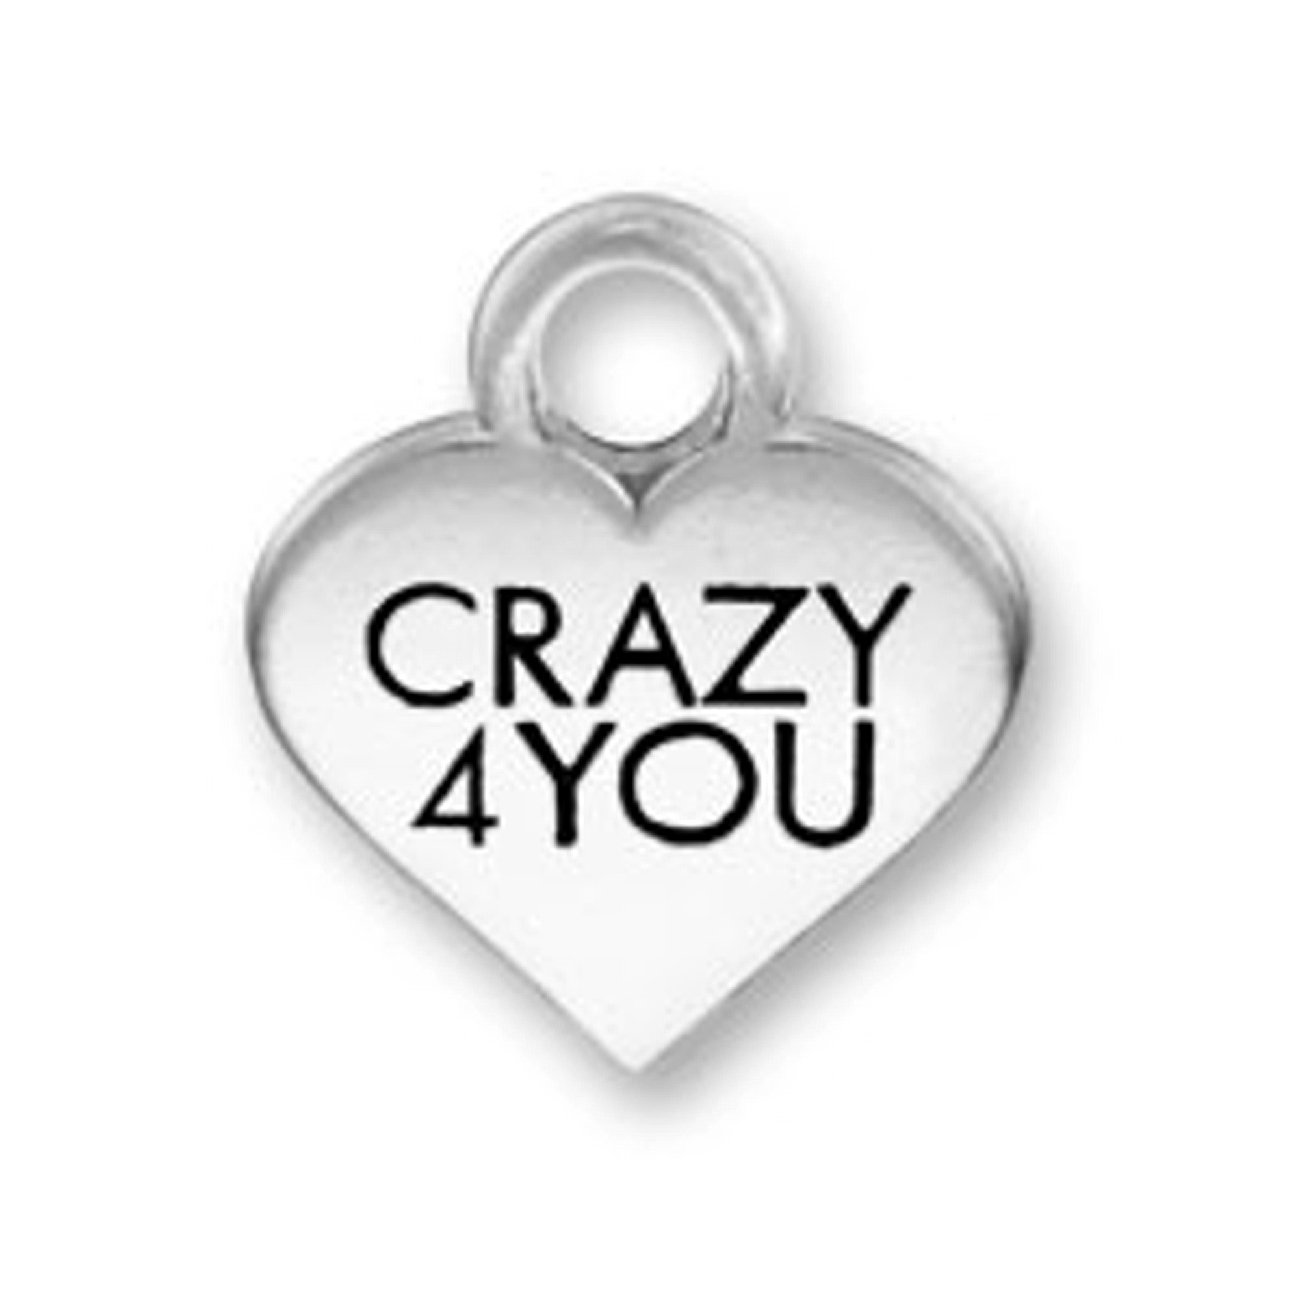 Sterling Silver 7 4.5mm Charm Bracelet With AttachedCRAZY 4 YOU Valentines Candy Heart Word Charmm